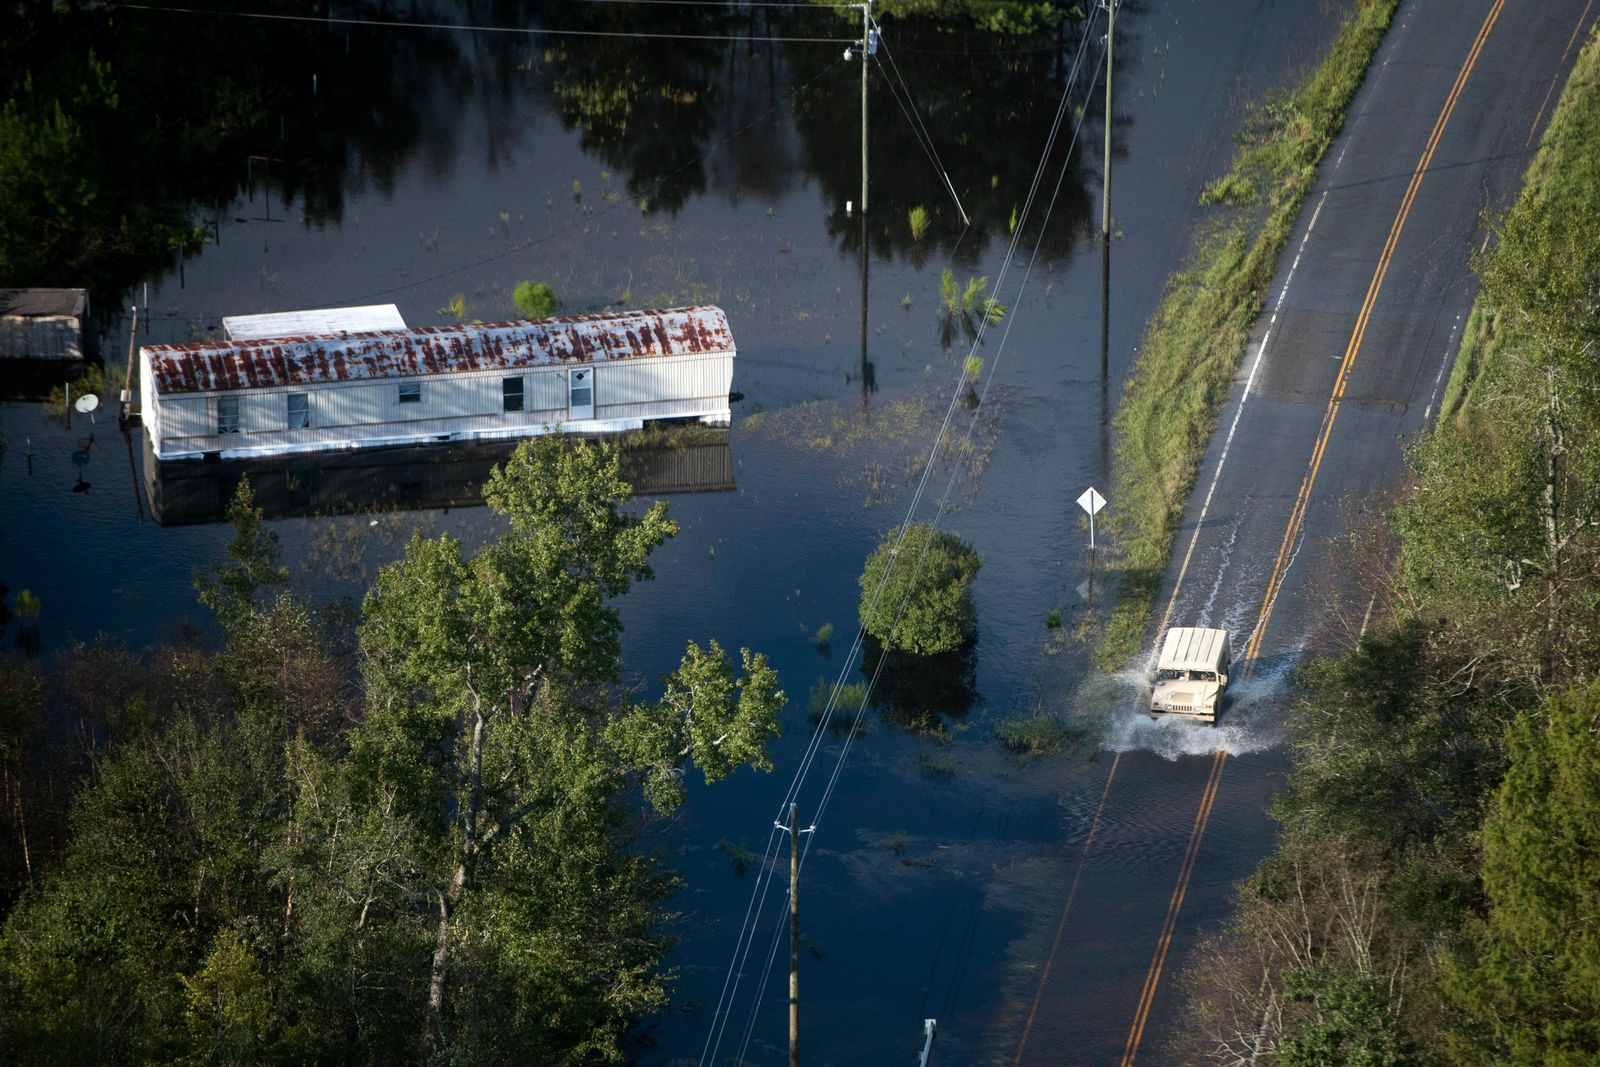 A truck drives through floodwaters after Hurricane Florence struck the Carolinas, Monday, Sept. 17, 2018, near Conway, S.C. (AP Photo/Sean Rayford)